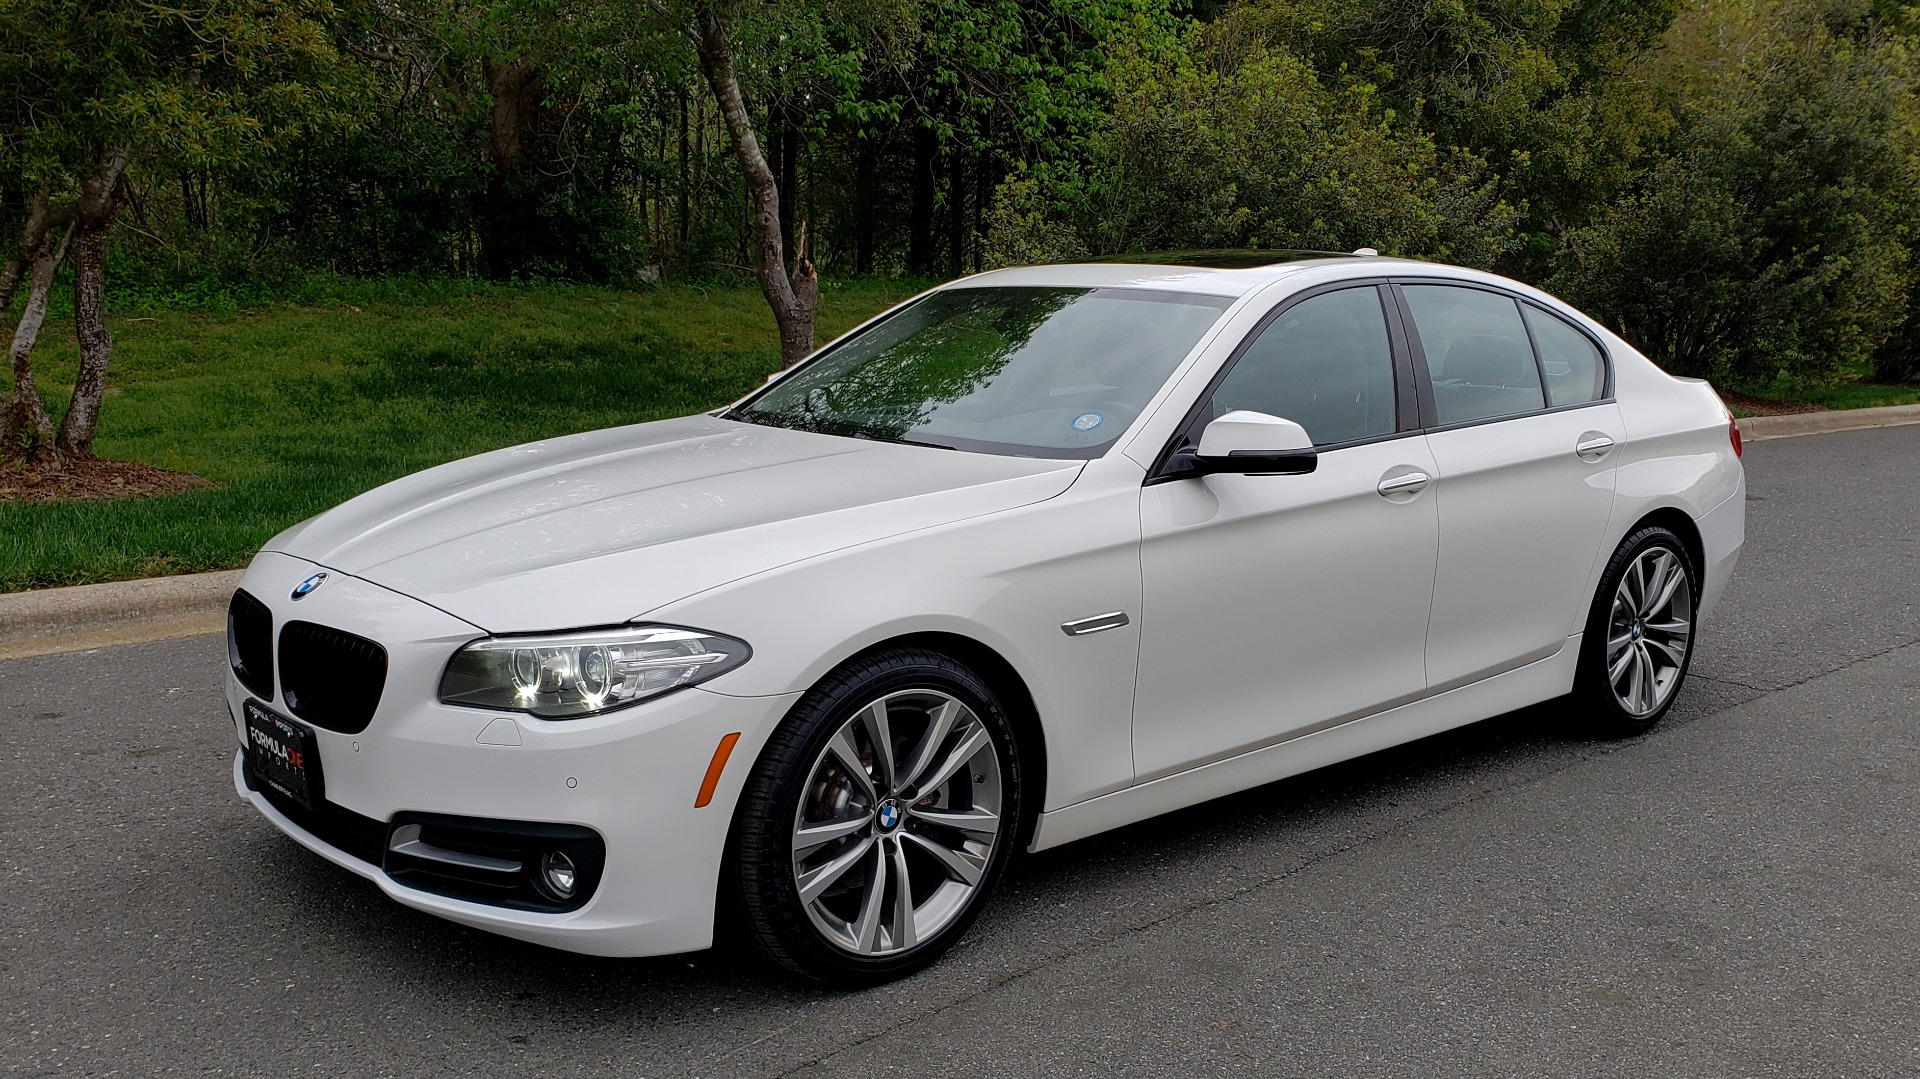 Used 2016 BMW 5 SERIES 528I XDRIVE SPECIAL EDITION / NAV / SUNROOF /HTD STS / REARVIEW for sale Sold at Formula Imports in Charlotte NC 28227 1